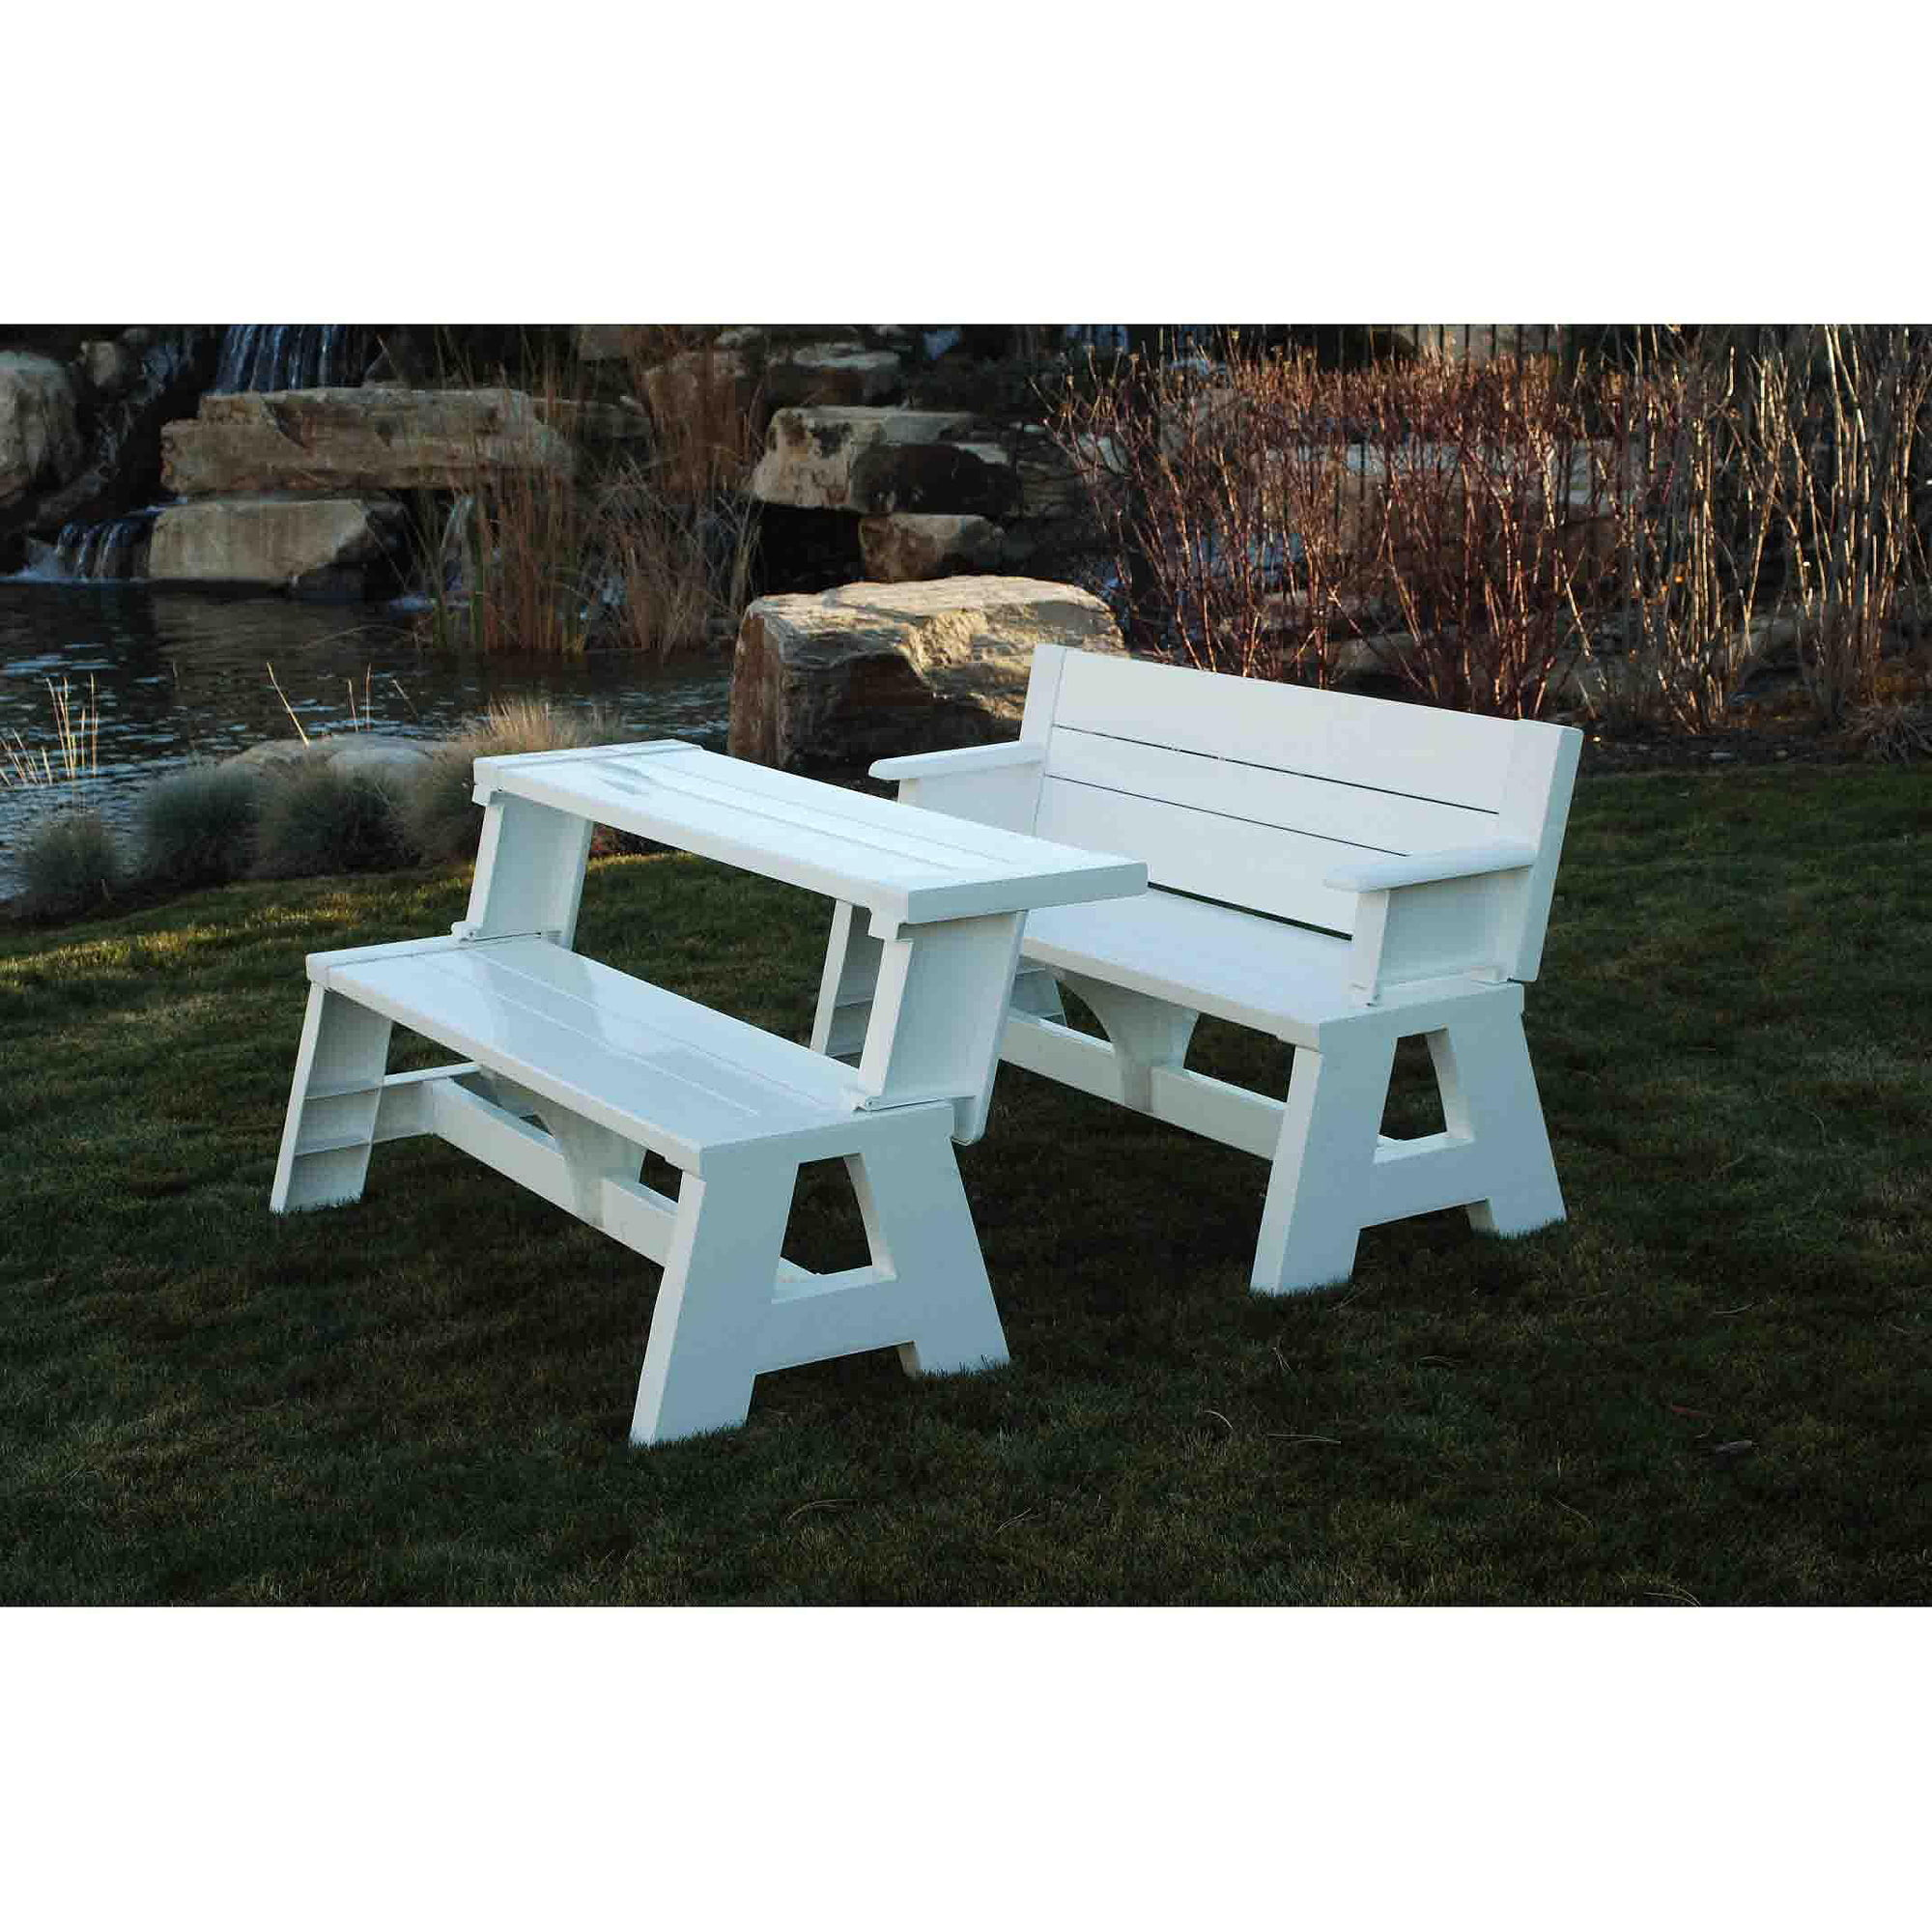 into bench southern table folding picnic sam outdoors boyz